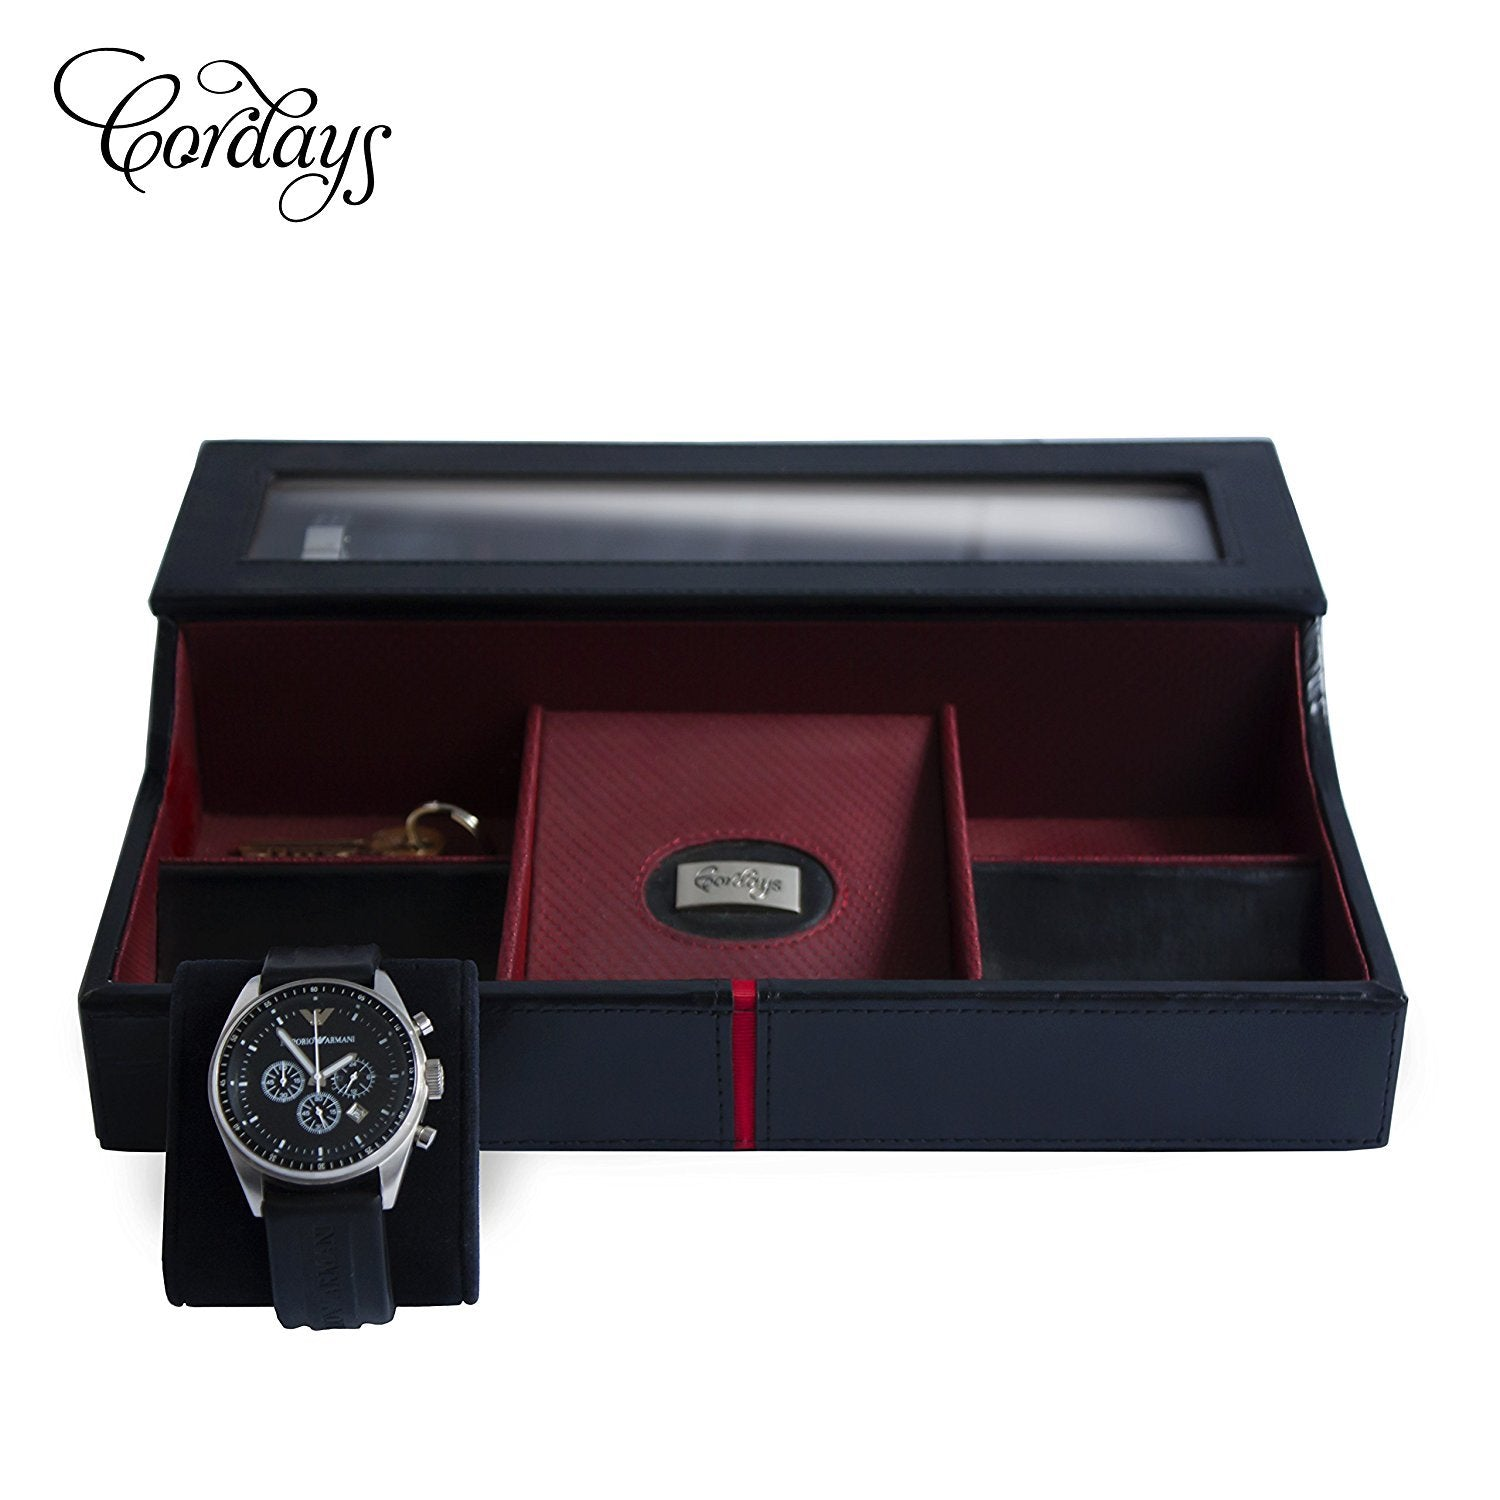 Deluxe Watch Box & Desk Valet in Black Genuine Leather